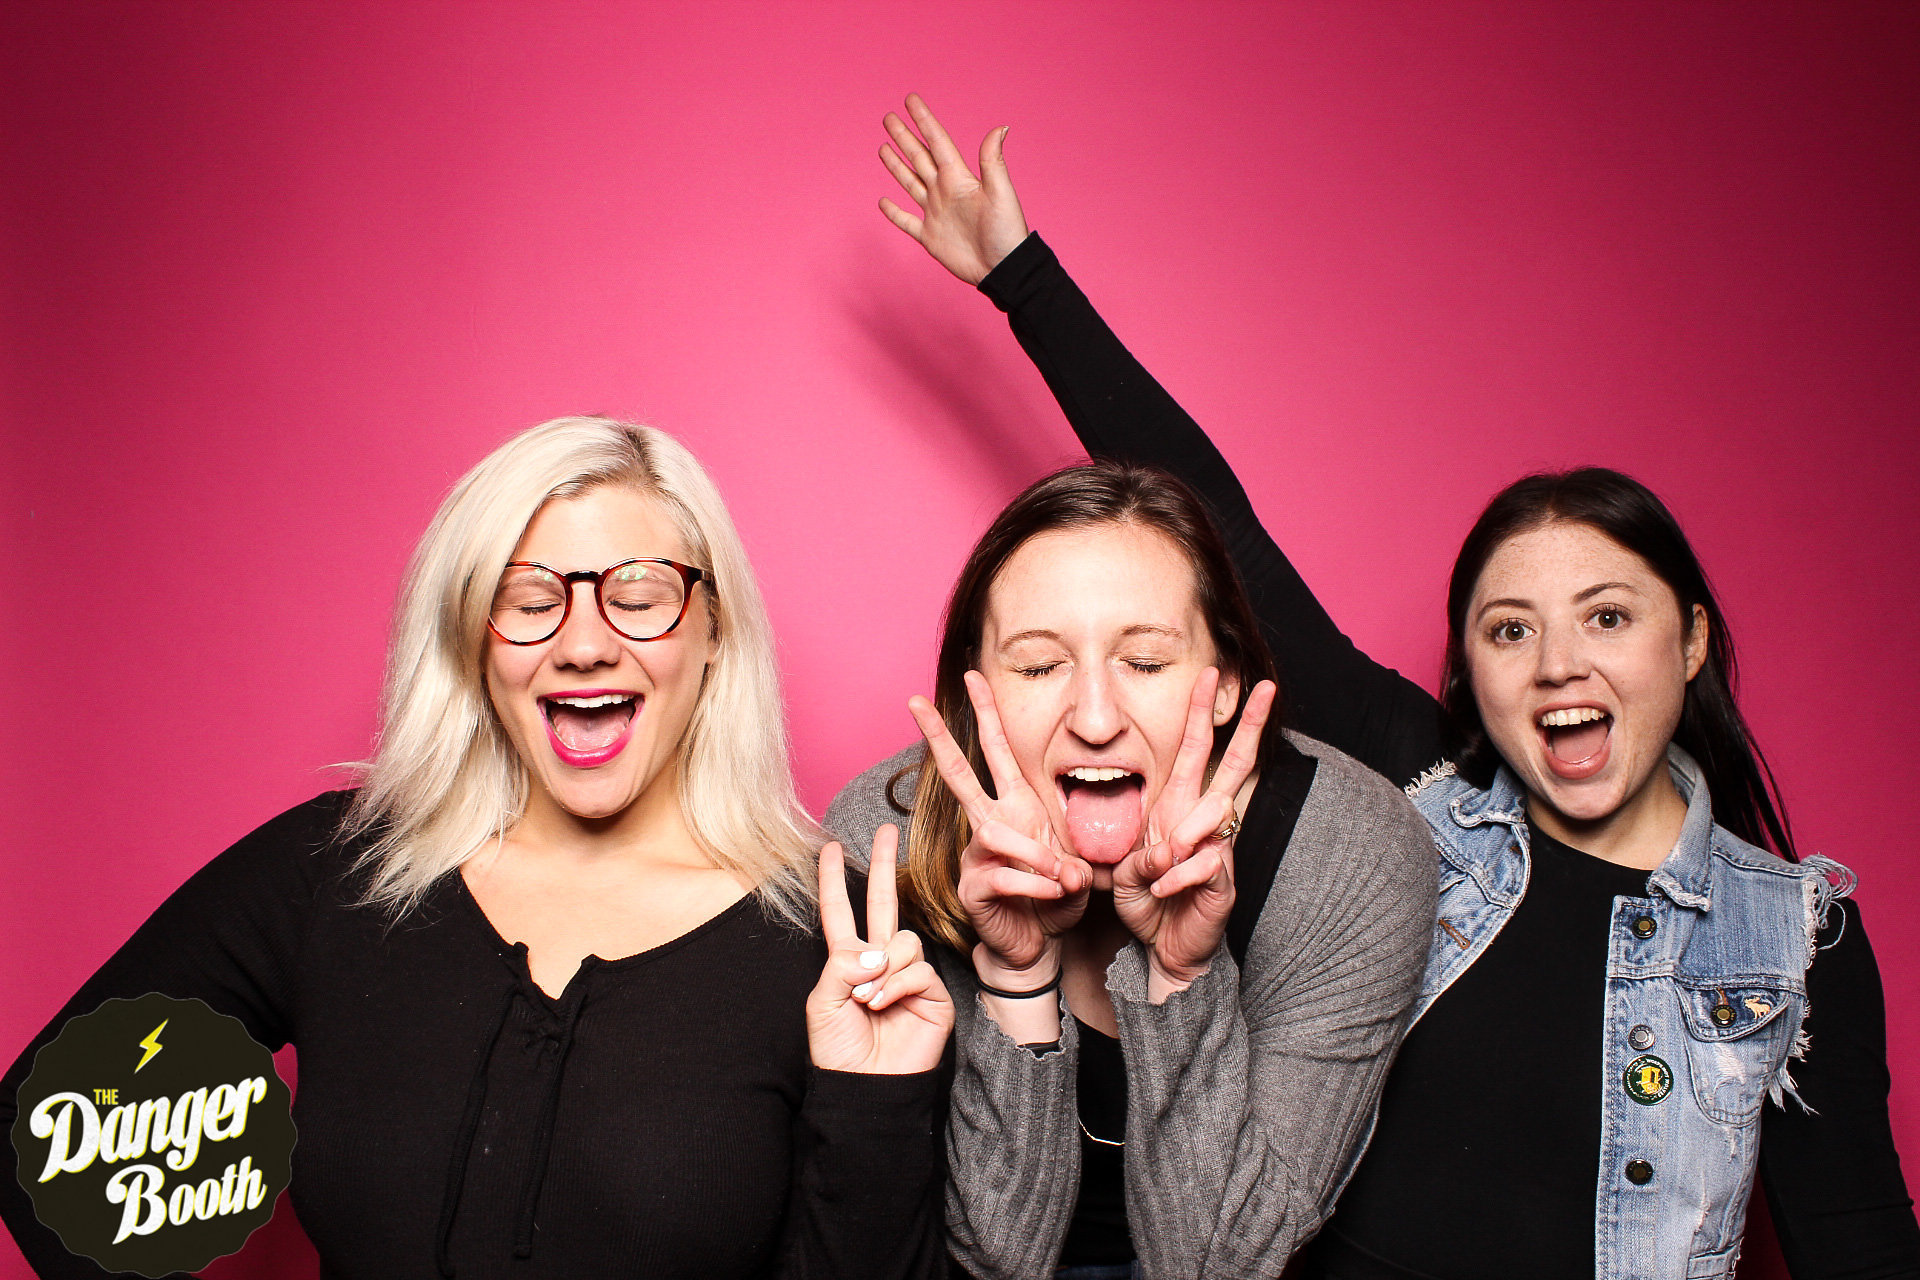 Best Boston Photo Booth | The Danger Booth